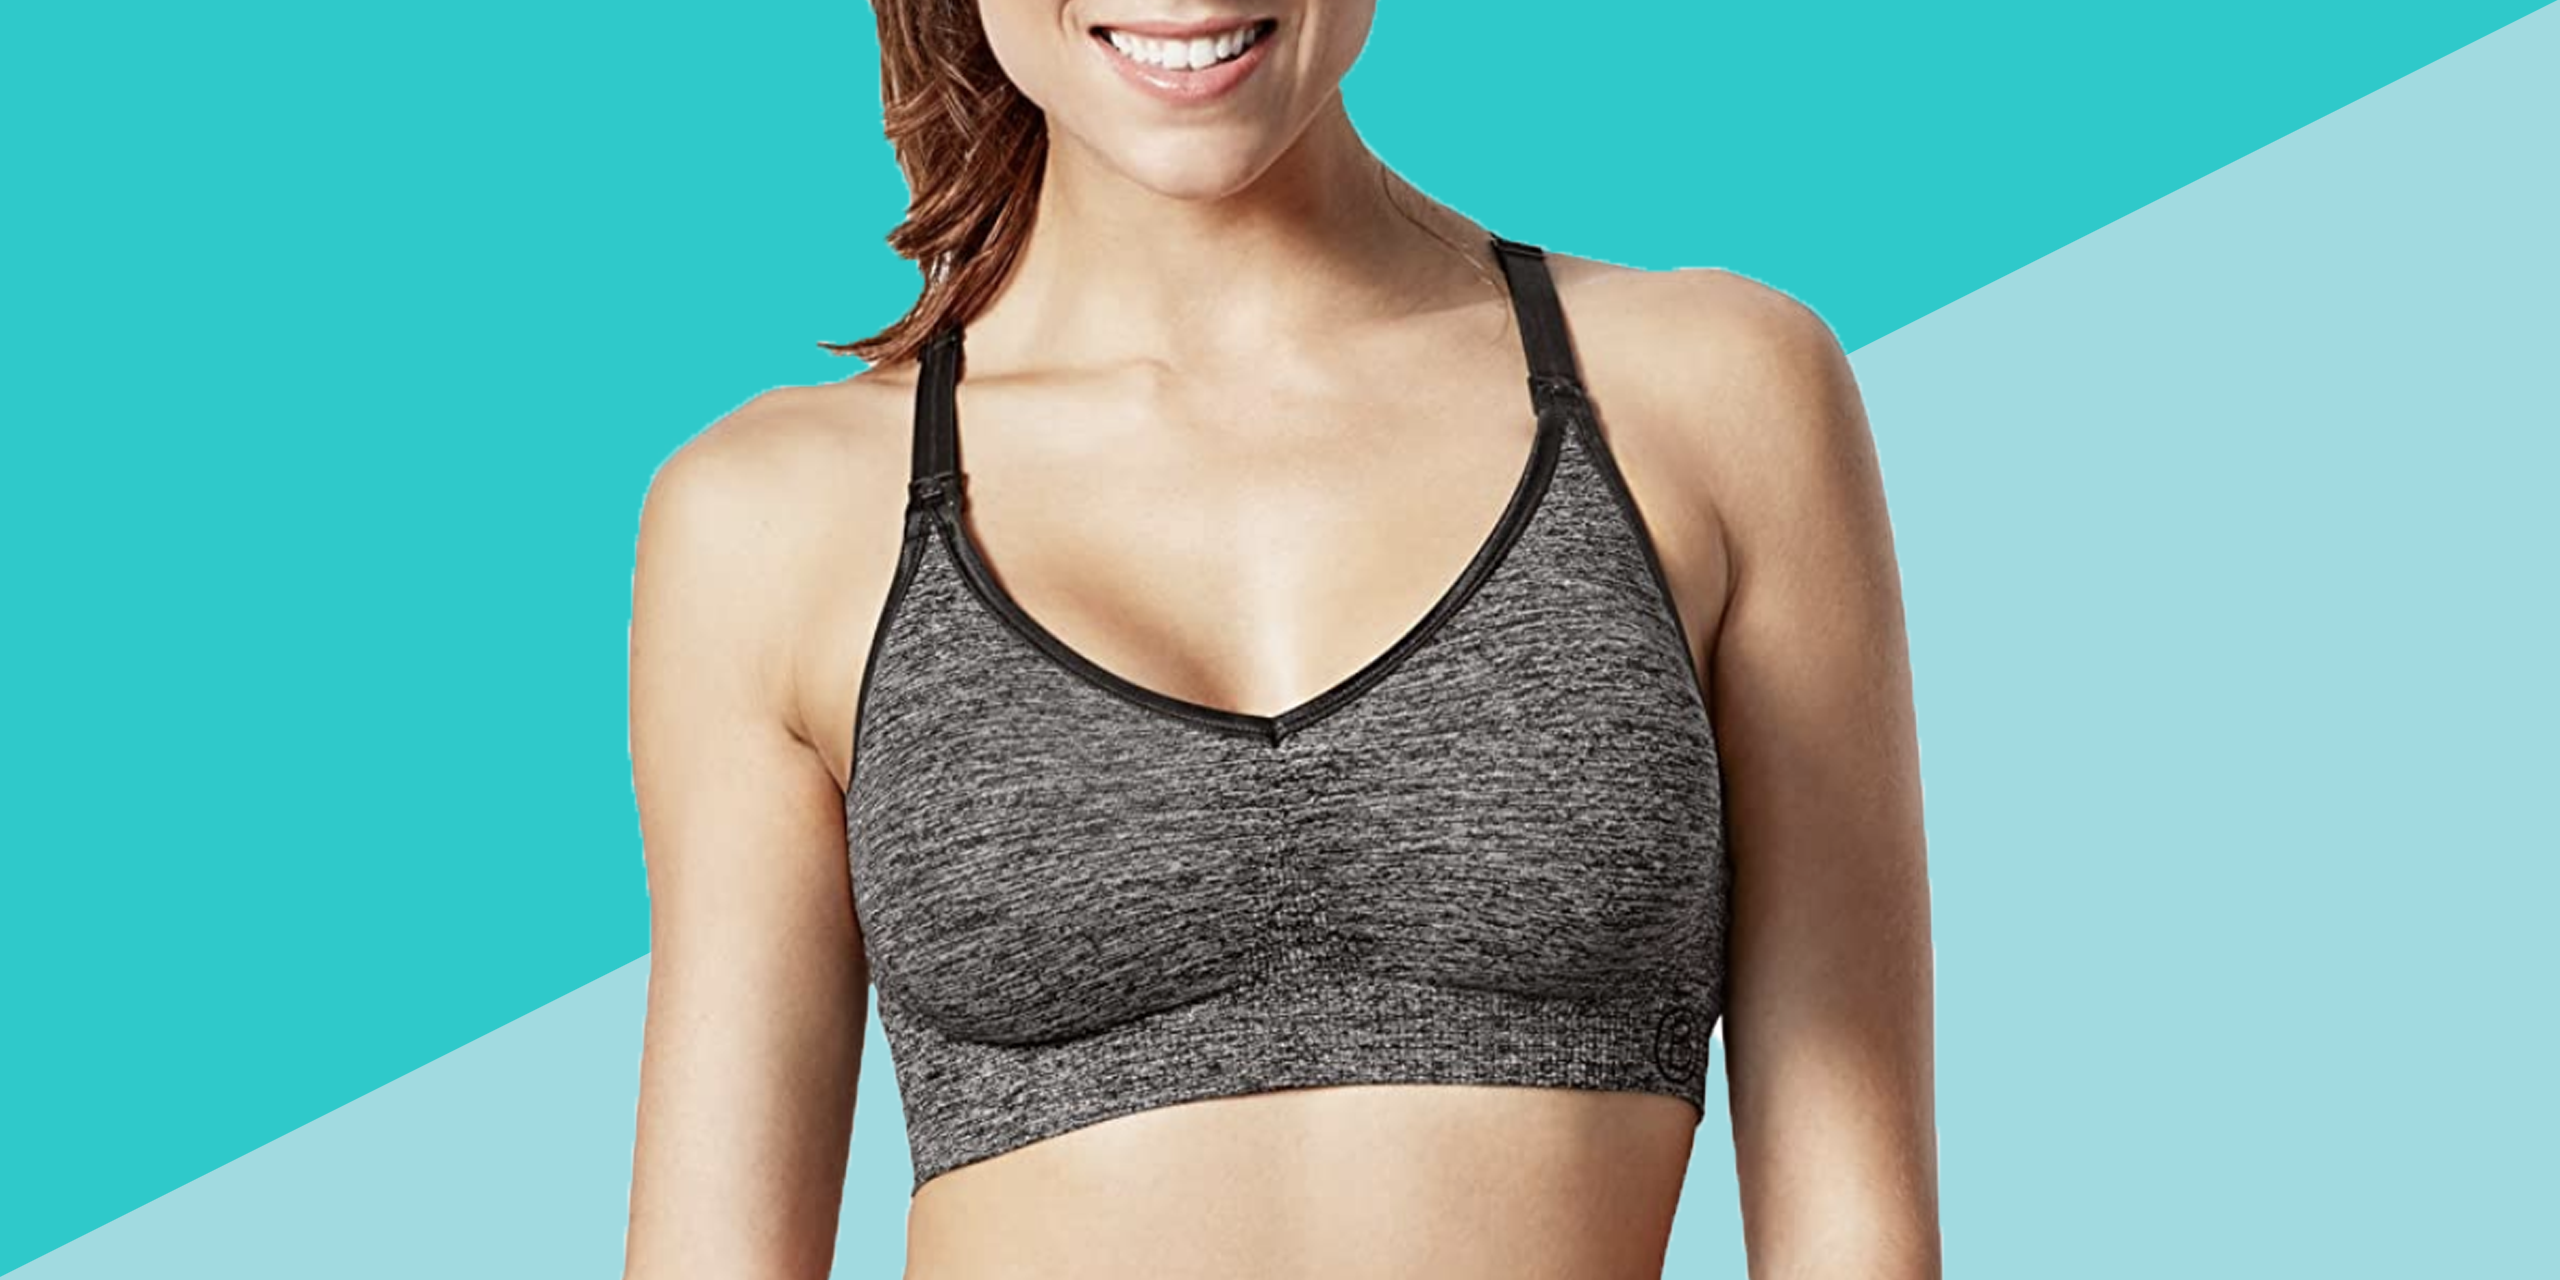 Finding High Quality Sports Bras